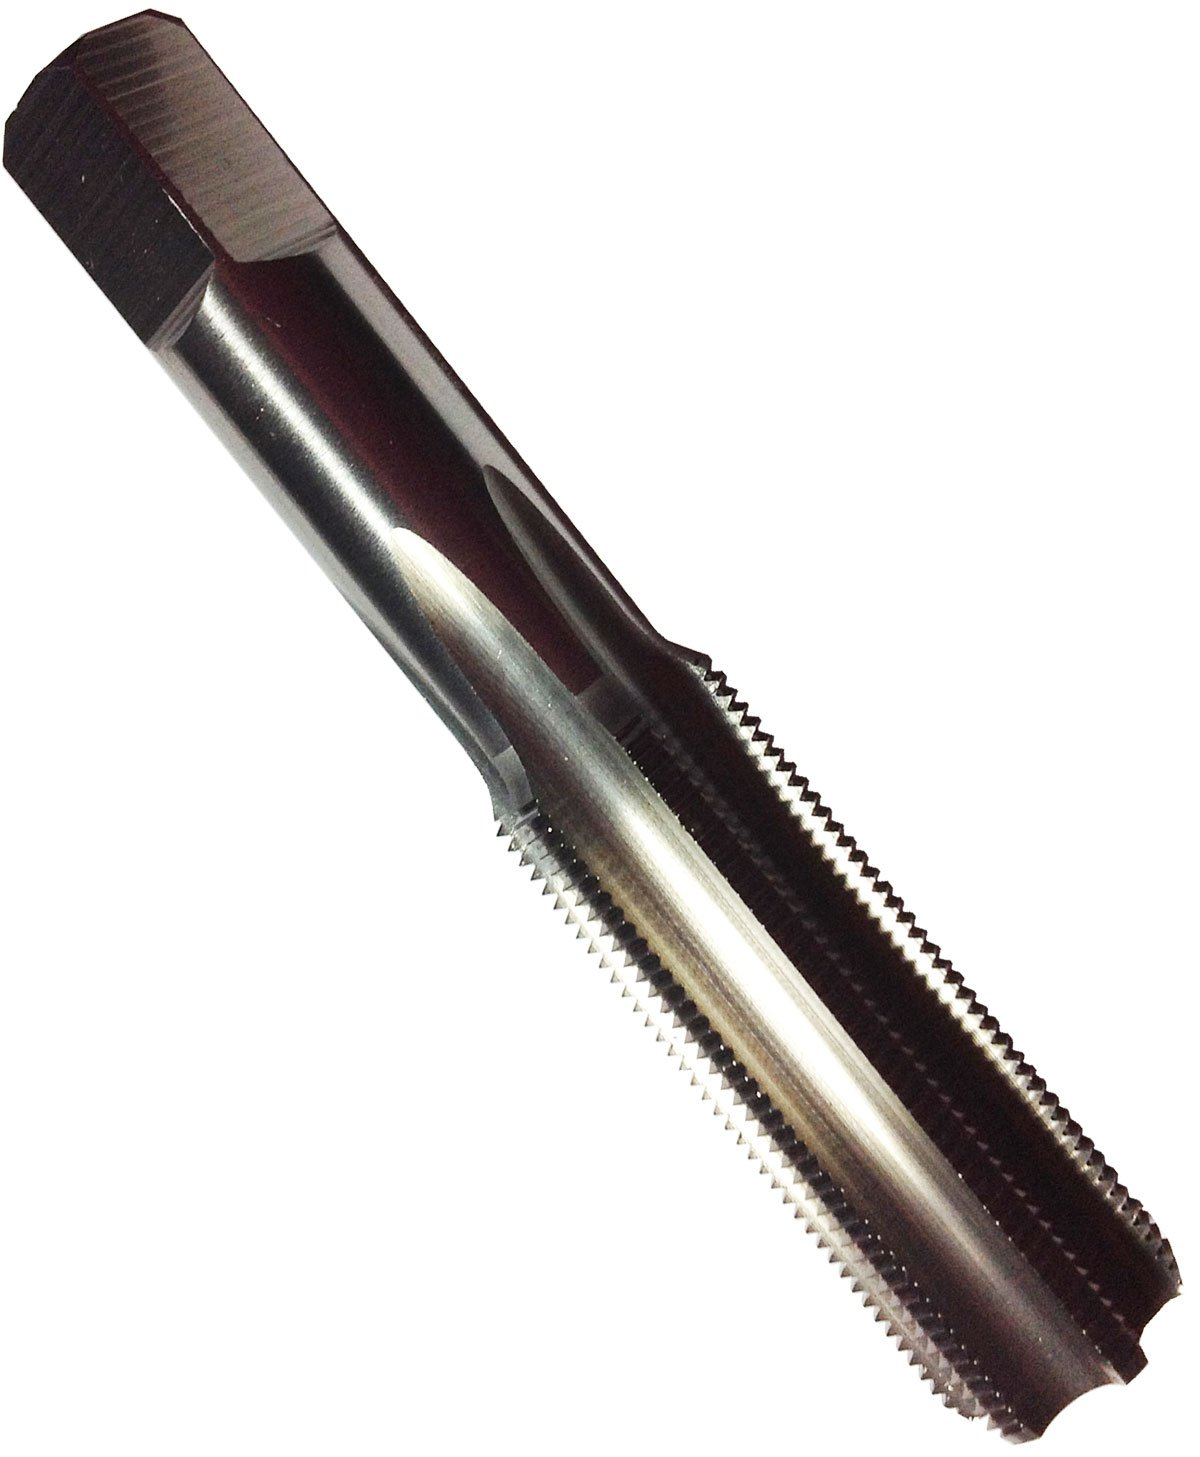 Kodiak Cutting Tools KCT9812872AM USA Made Bottoming Tap, High Speed Steel, 3/4'', 20 TPI